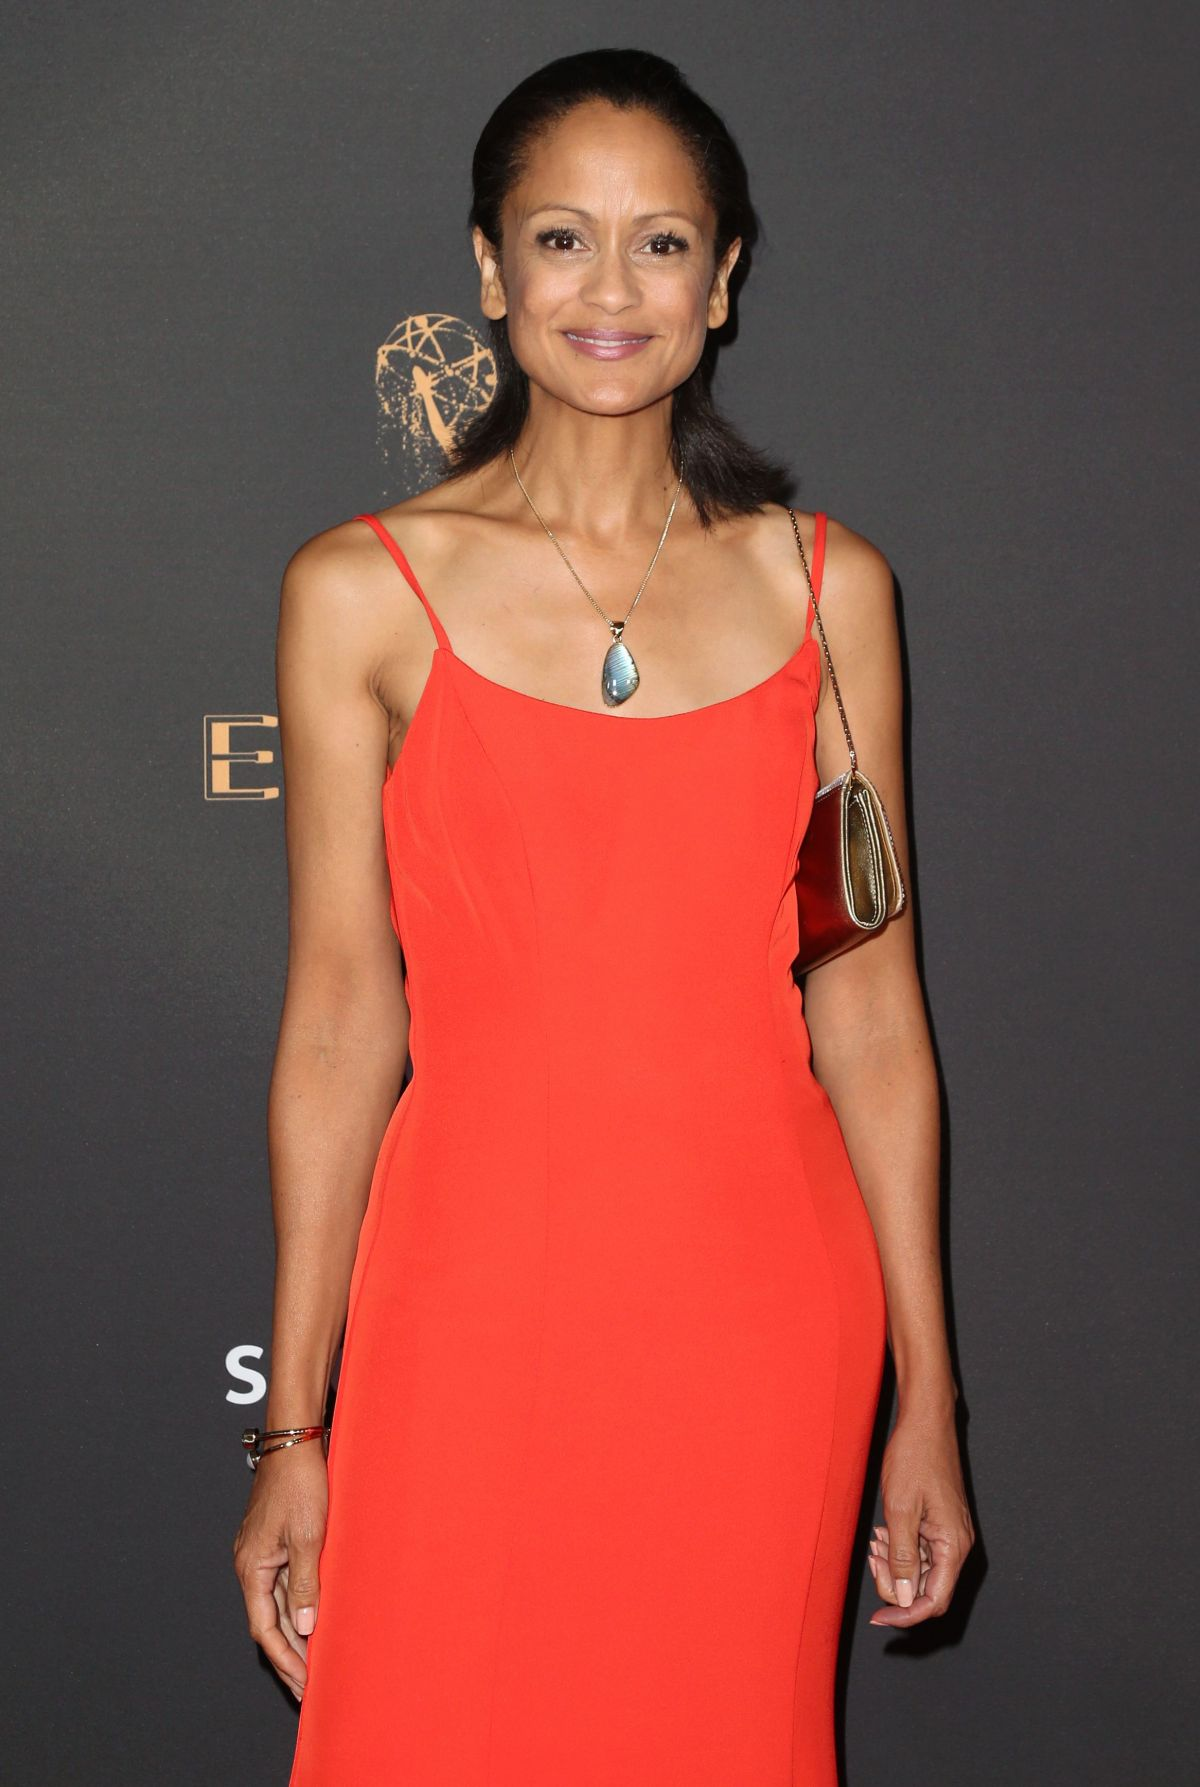 Anne-Marie Johnson At Dynamic & Diverse Emmy reception, Los Angeles